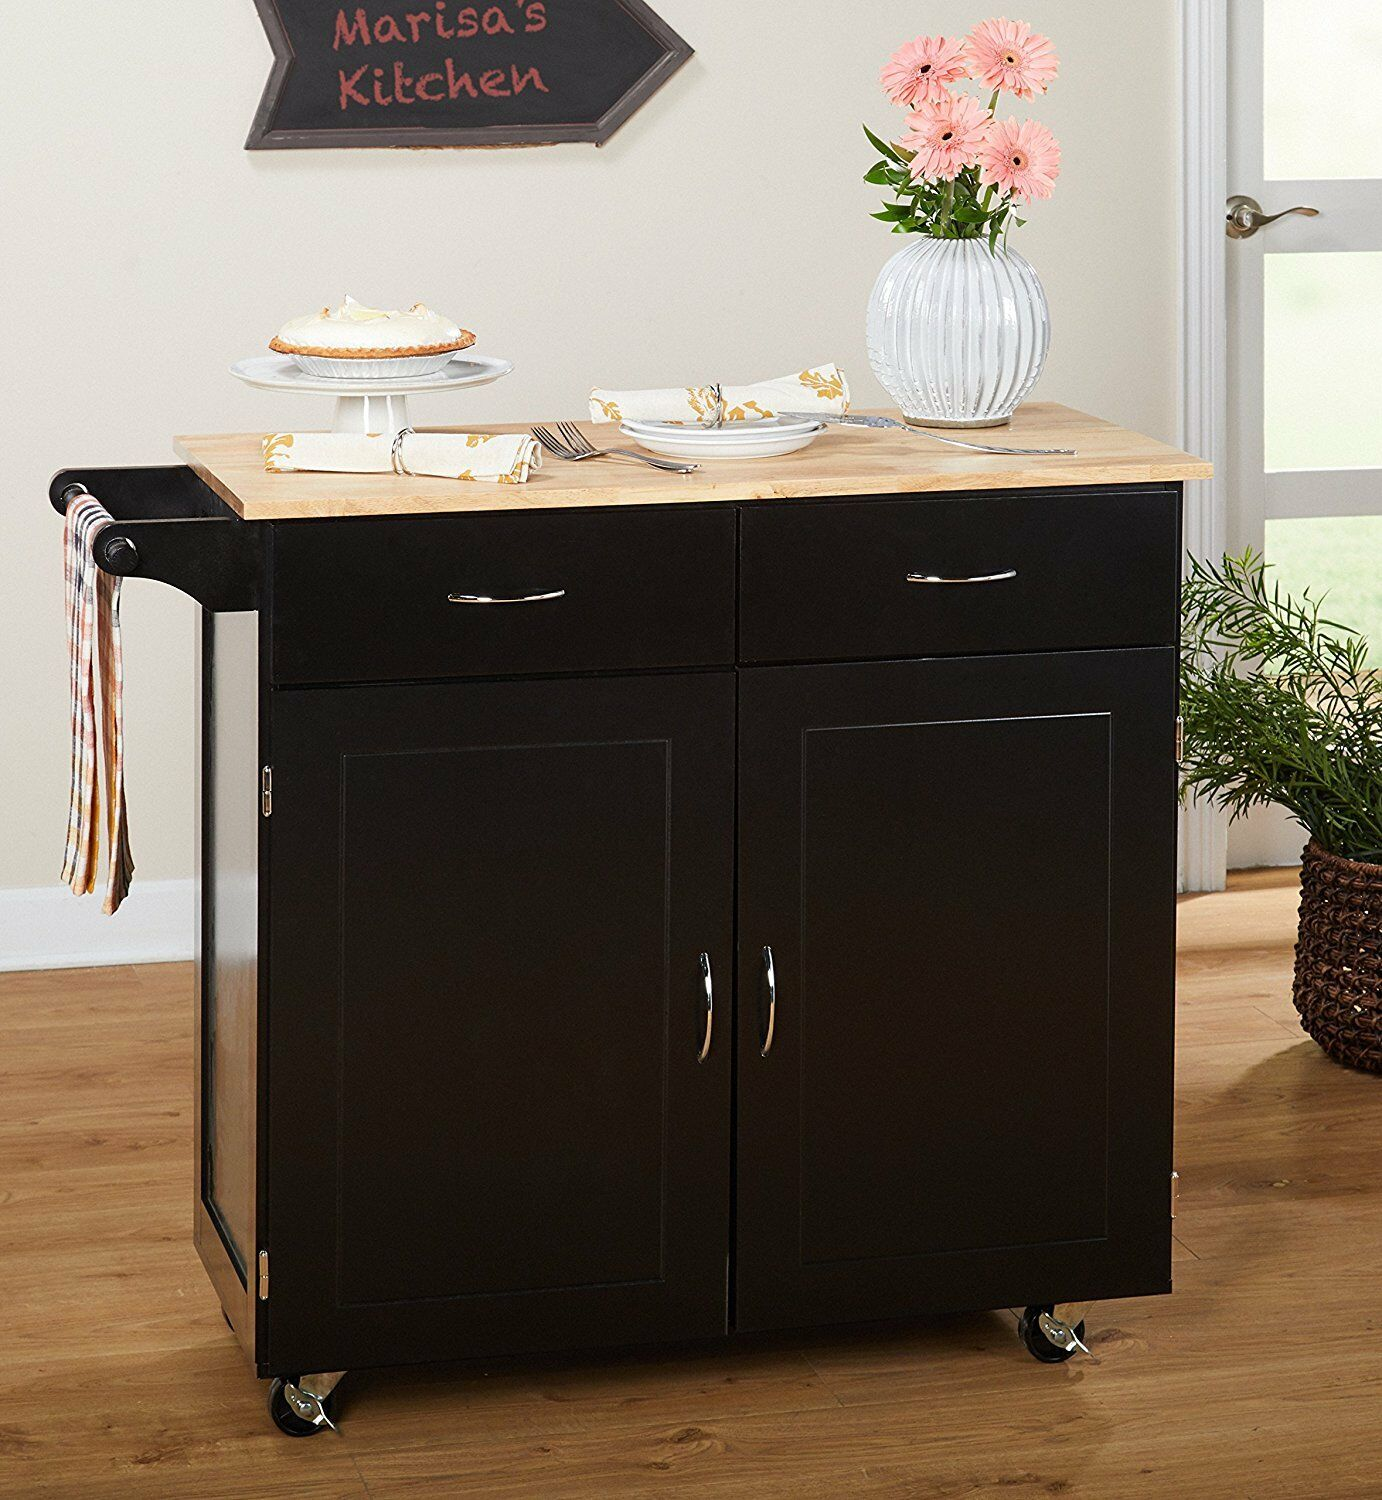 Kitchen Cart With Drawers: Large Kitchen Cart Rolling Island Black With Wood Top 2